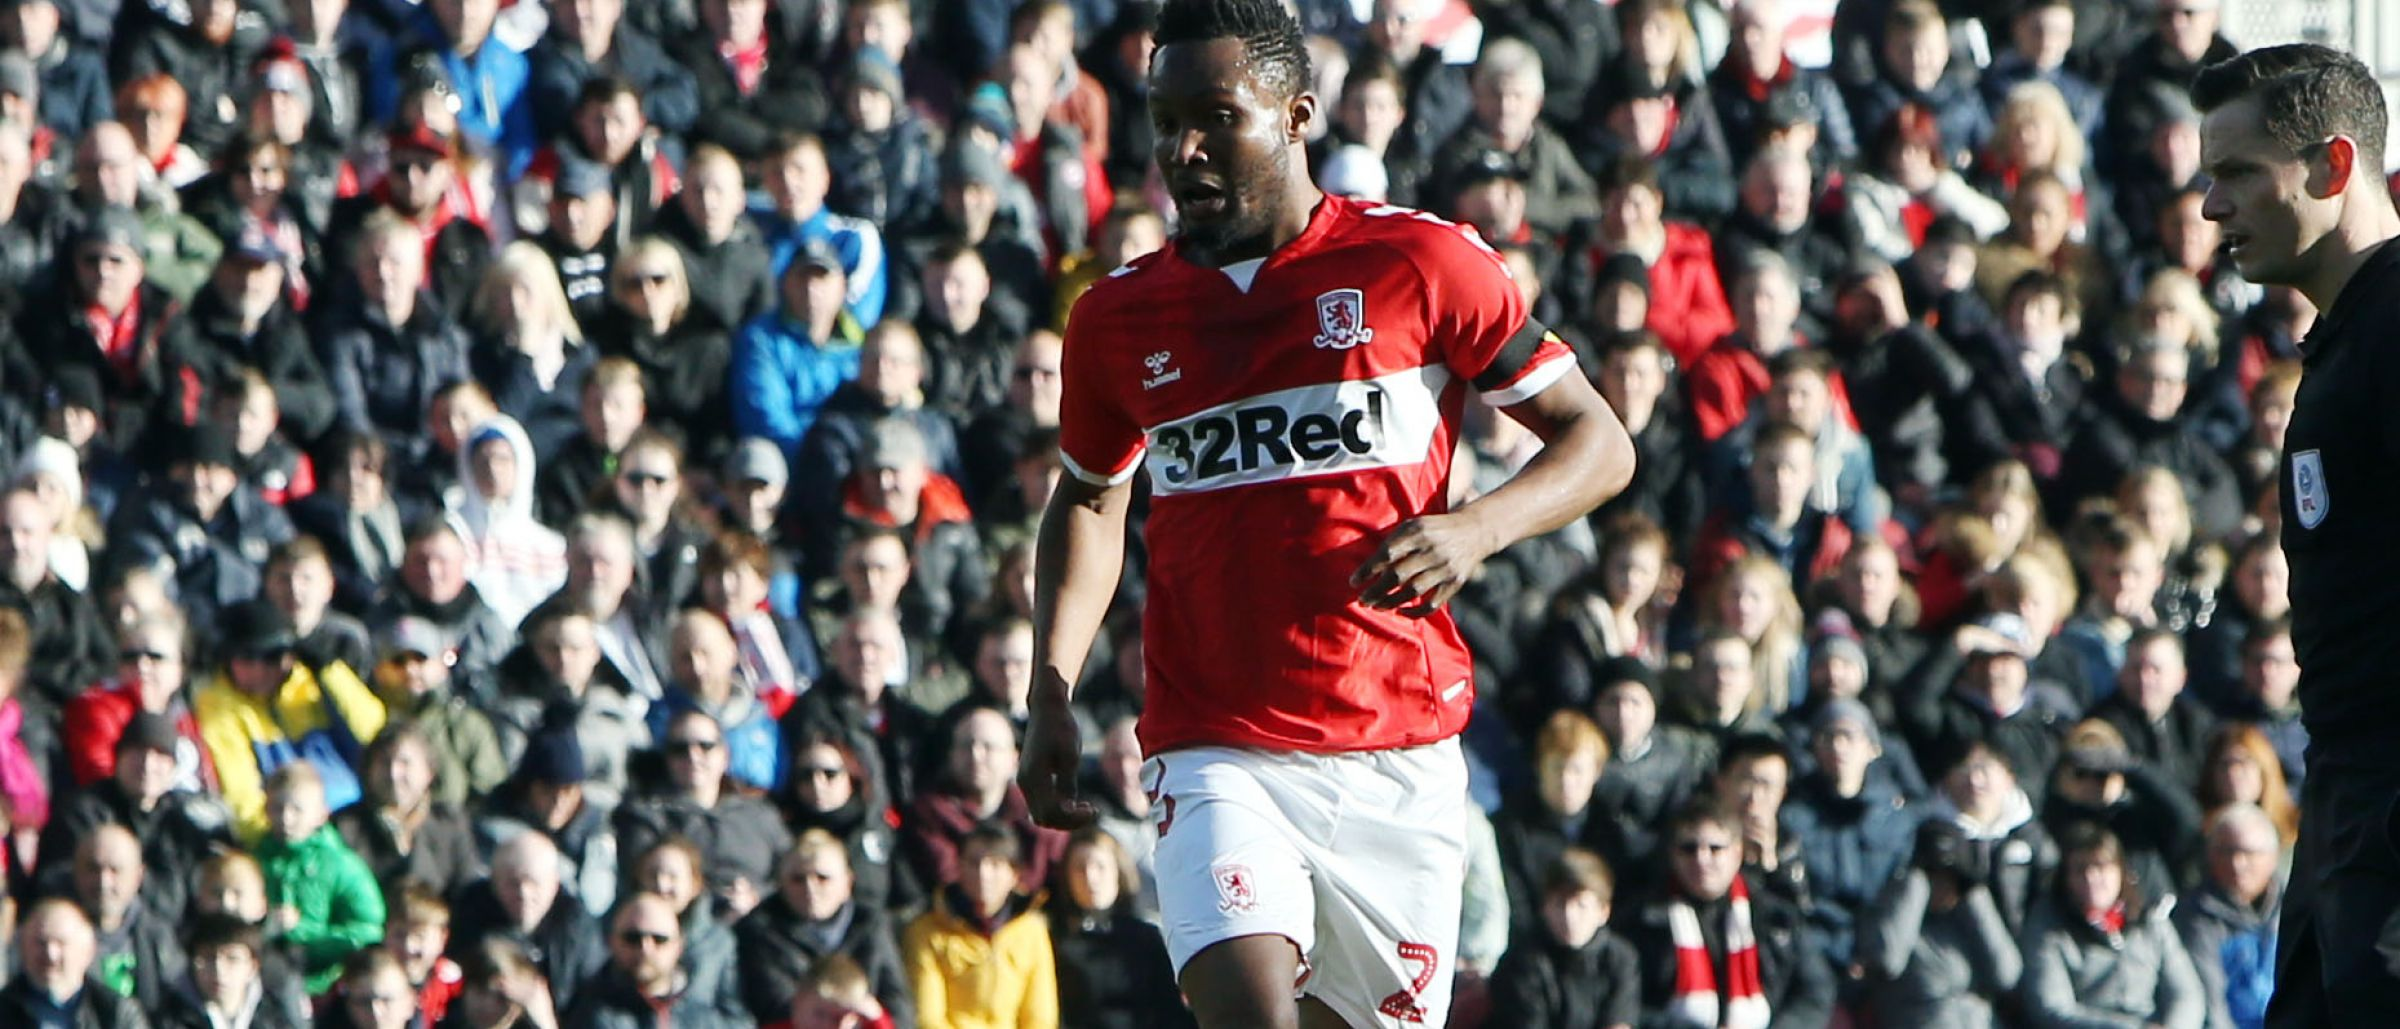 John Obi Mikel oozes calm and confidence as he plays the ball in Boro's midfield